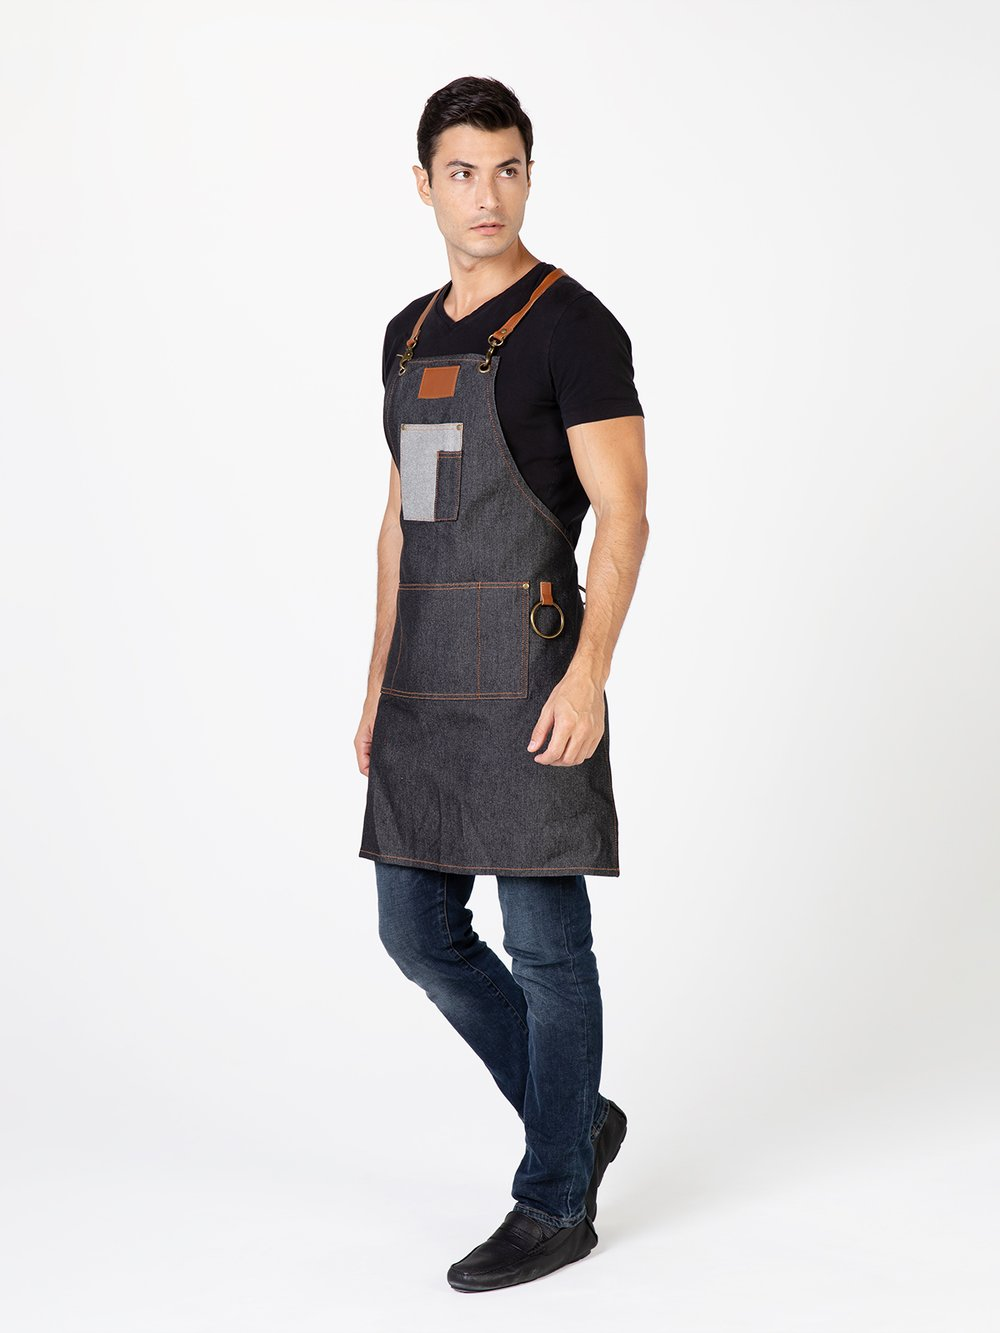 Betty Dain BROOKLYN DENIM APRON BLACK 8295